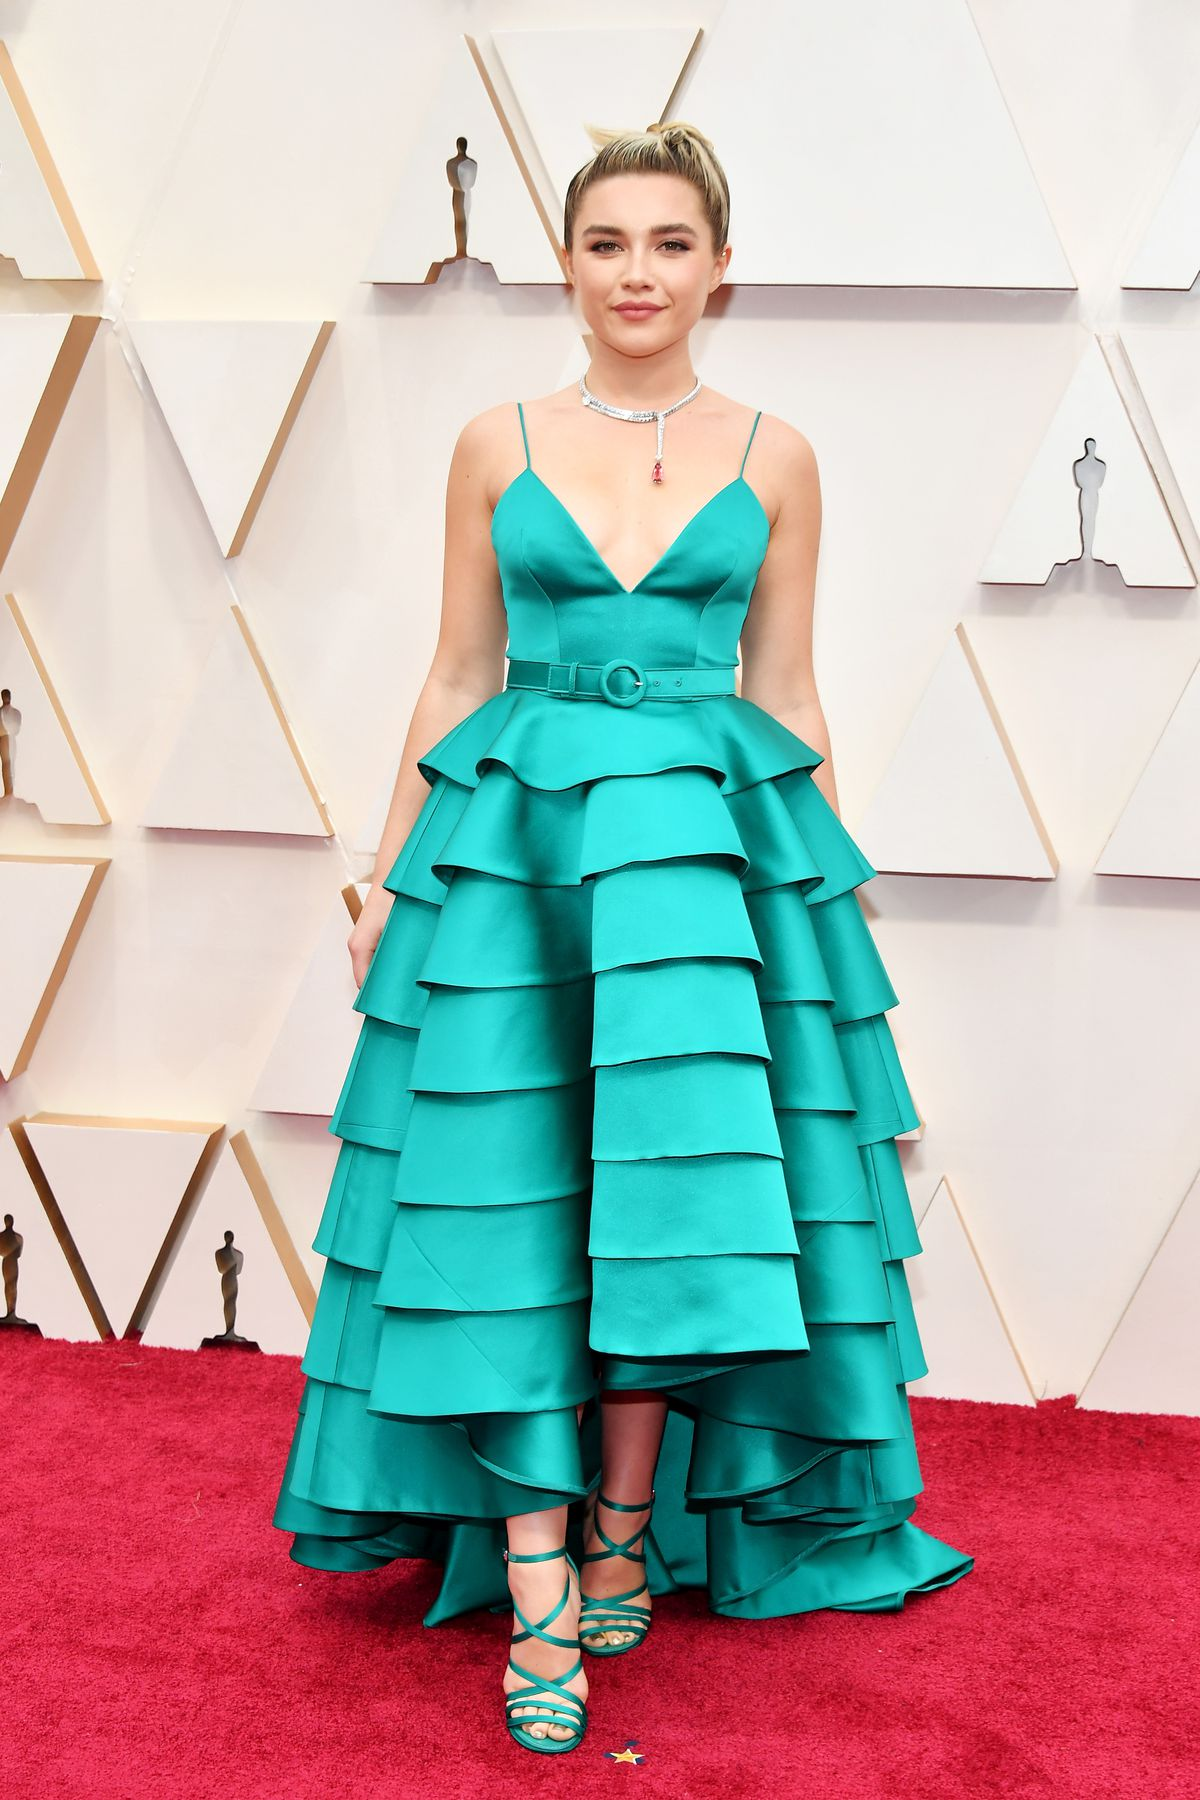 Florence Pugh attends the 92nd Annual Academy Awards in a teal Louis Vuitton dress.